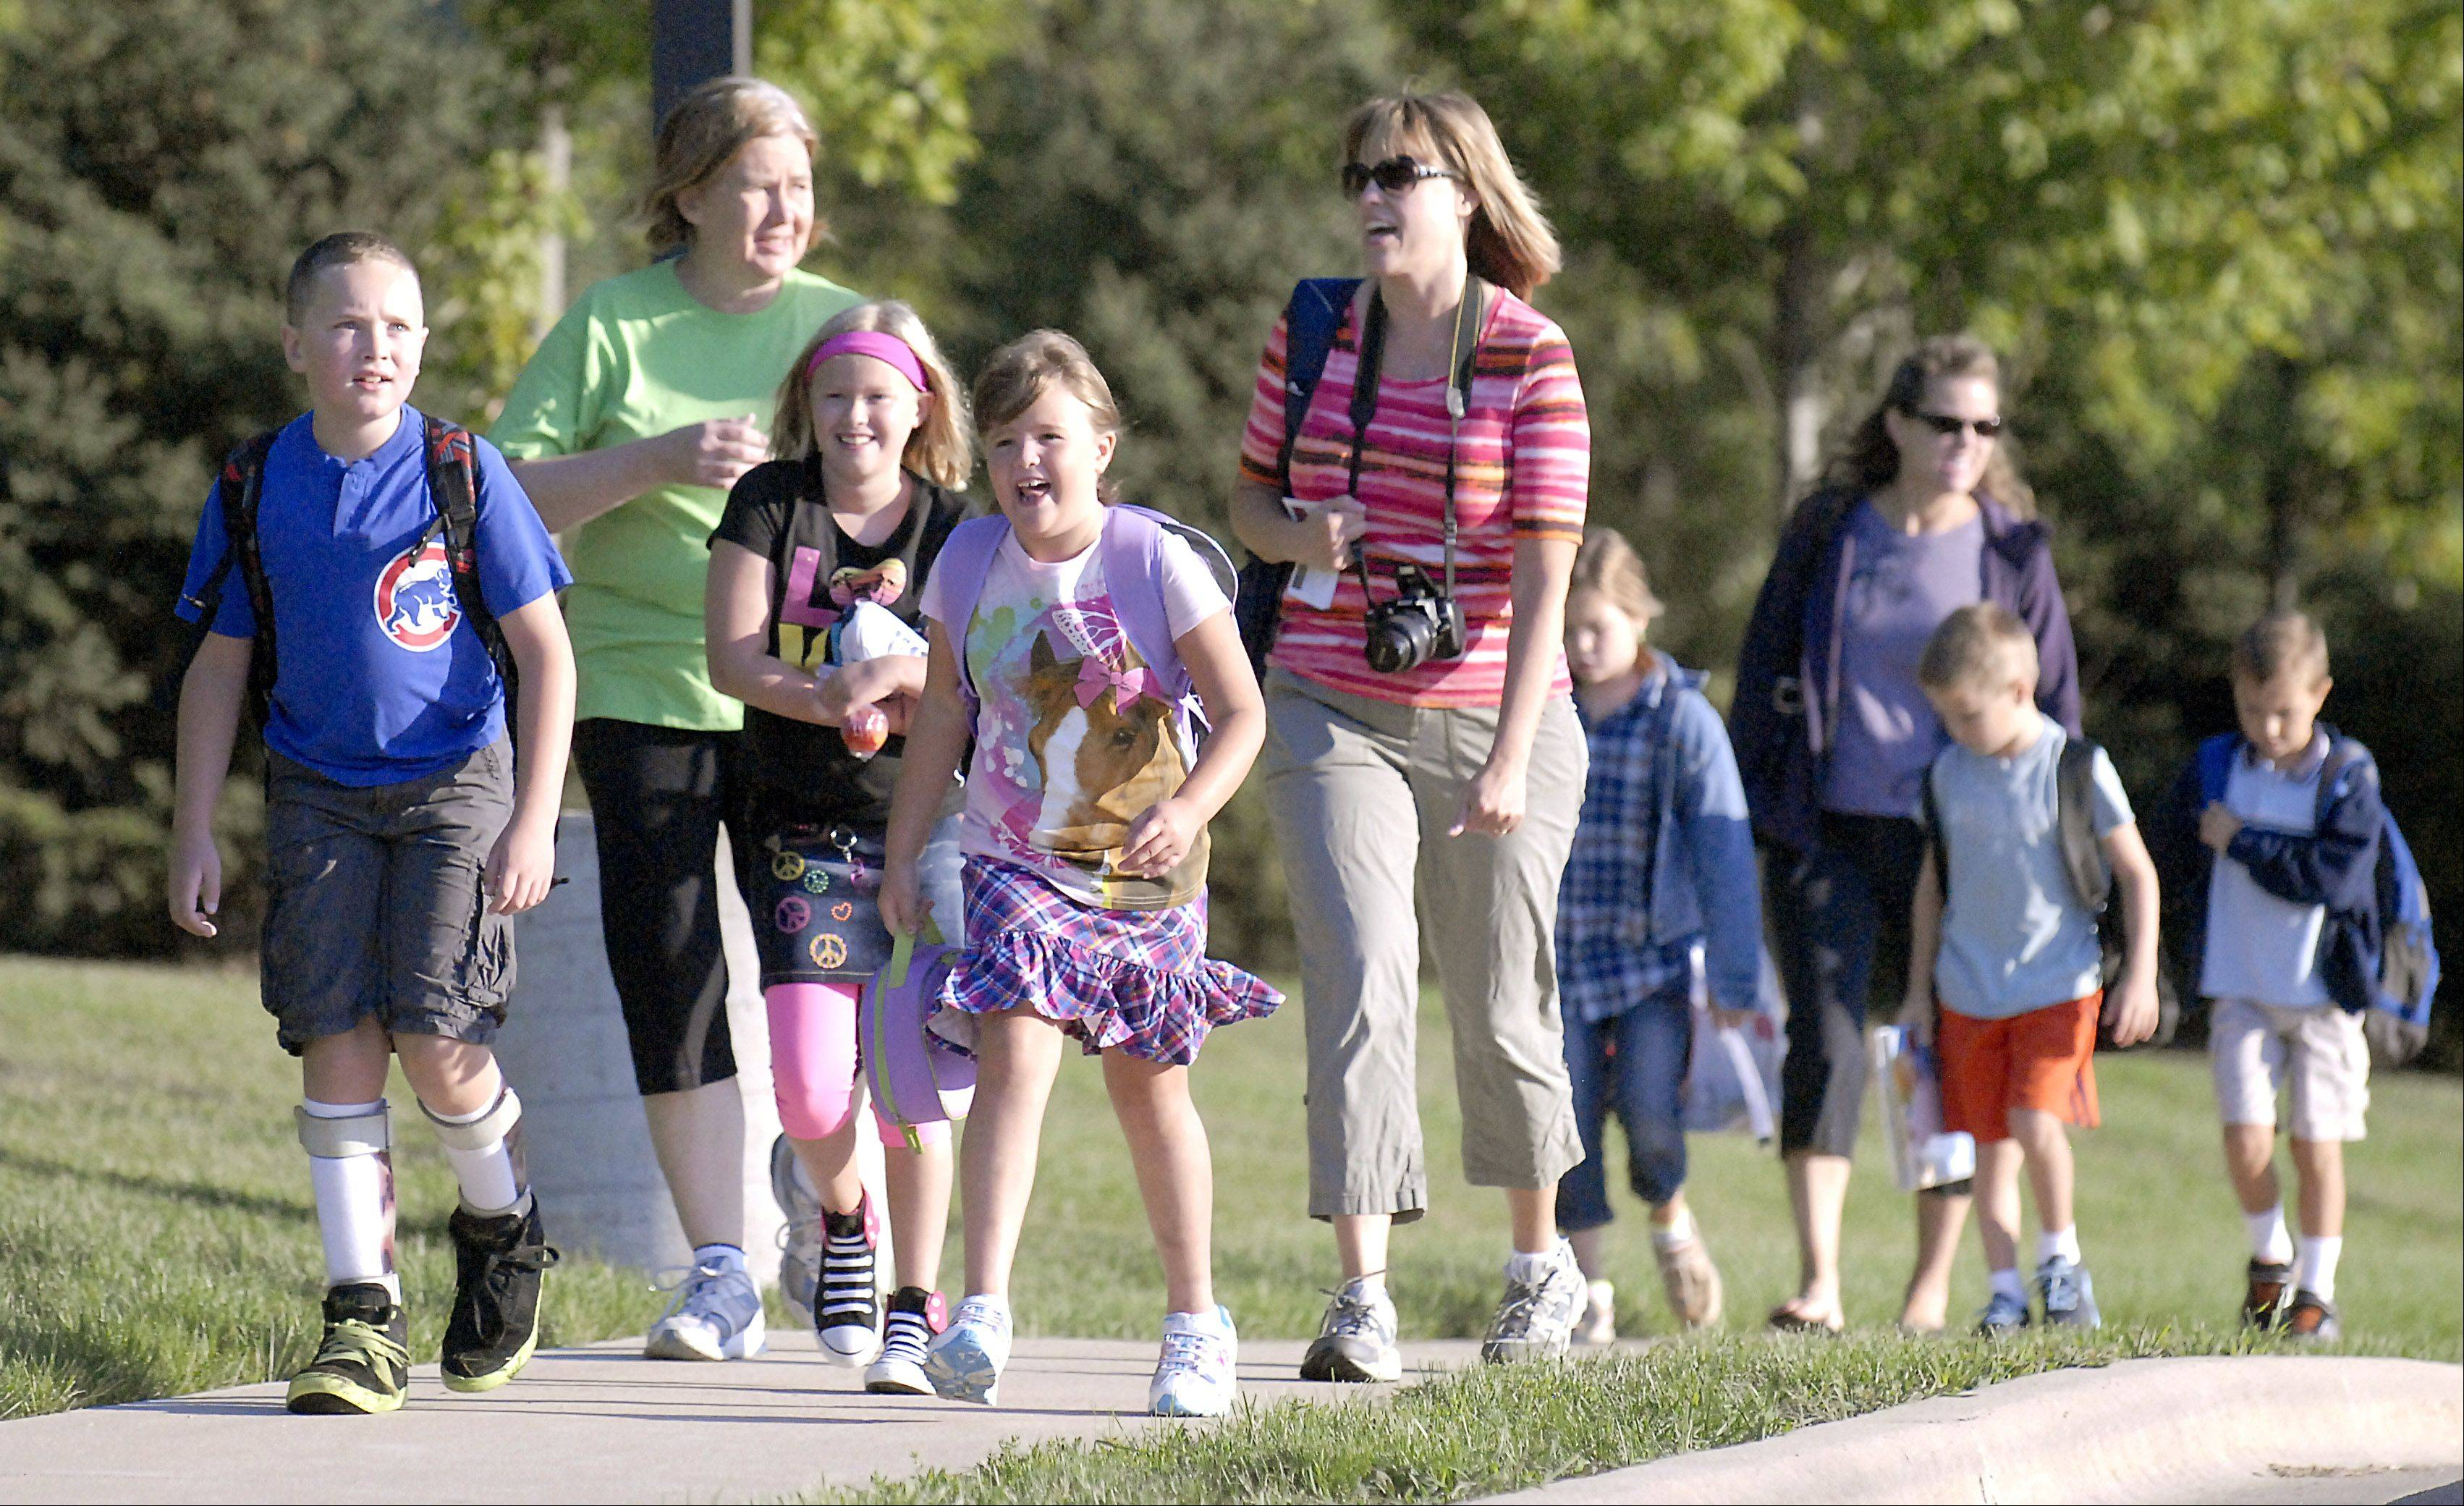 Liam Jackowiec, 10, with Amy Ralston, 8, and her sister Dana, 6, walk with their mothers Marg Jackowiec and Cathy Ralston to Williamsburg Elementary School for the first day of school in Geneva on Wednesday.